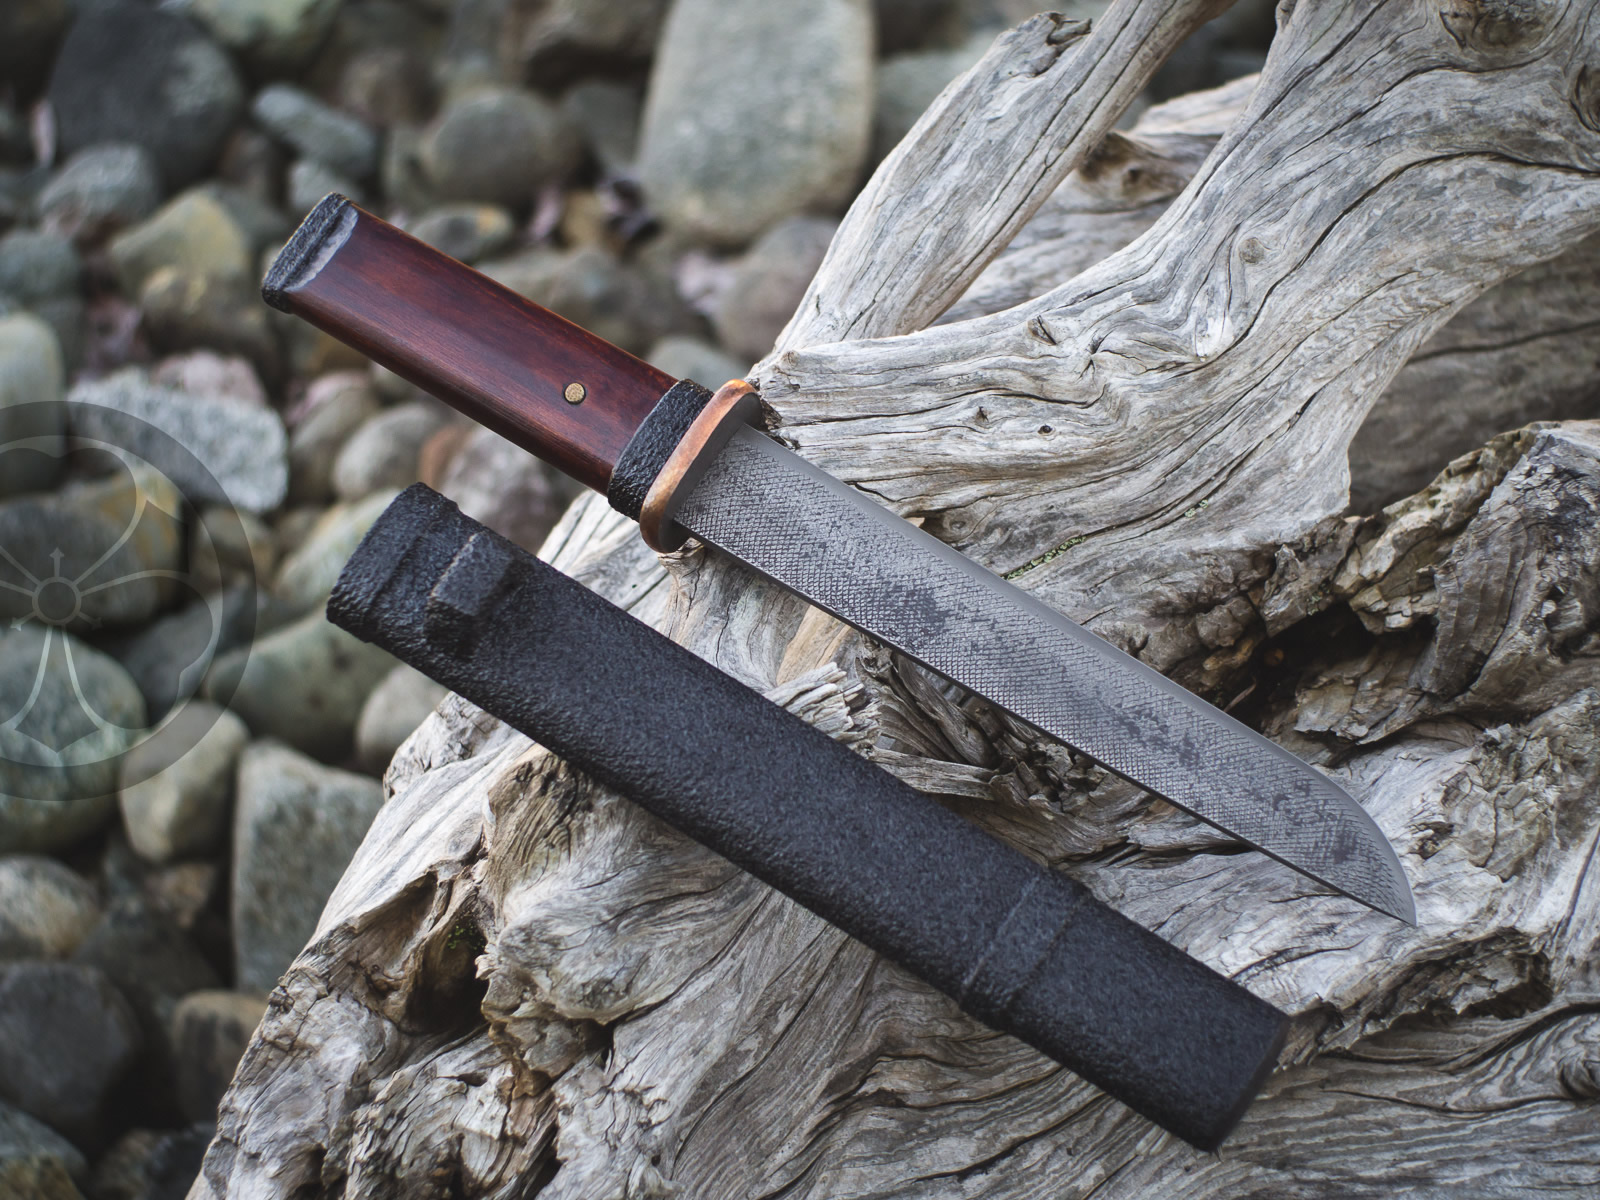 Island Blacksmith: Charcoal forged tanto, reclaimed steel.